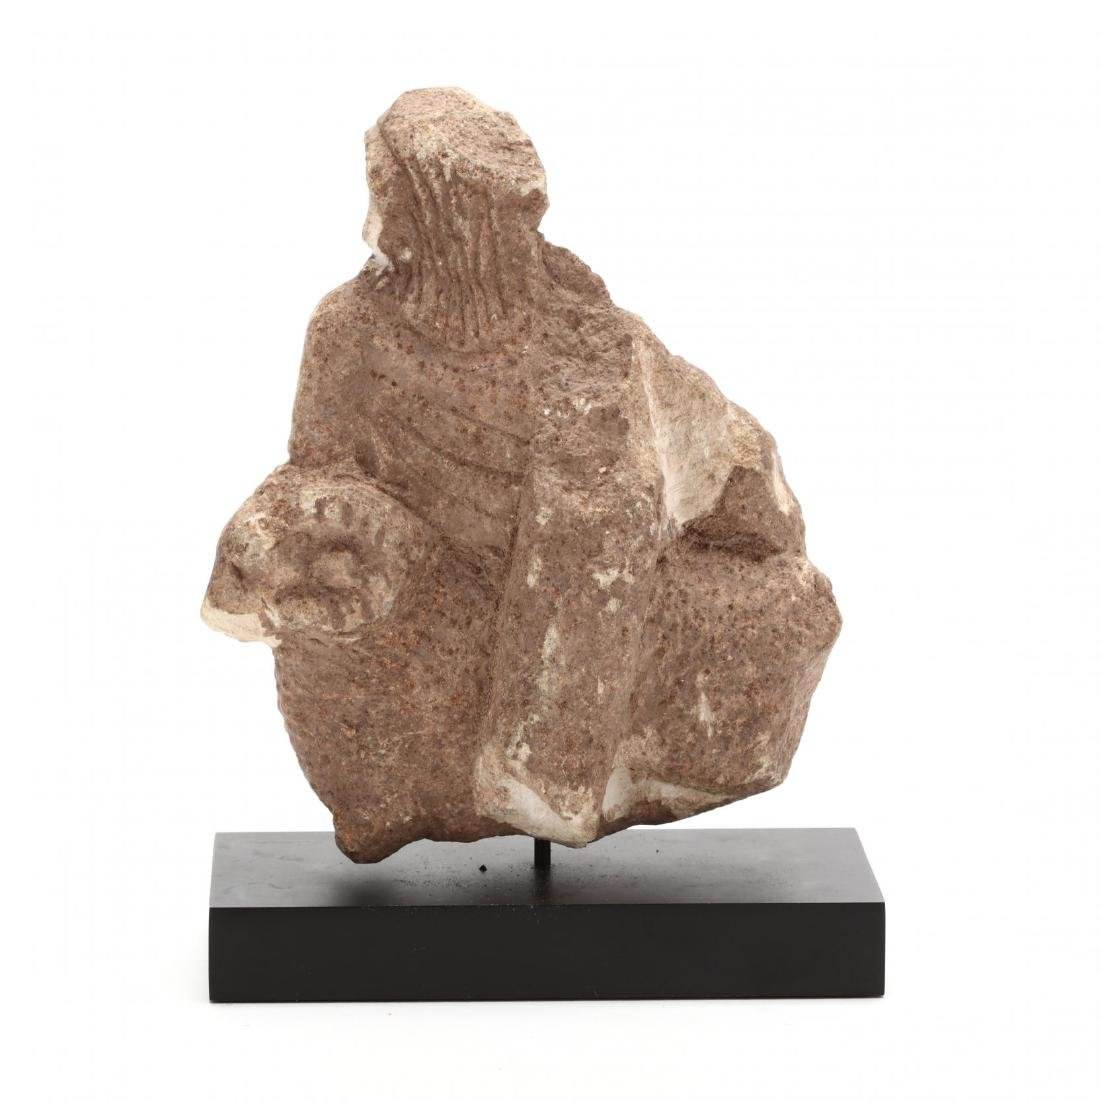 Cypriot Archaic Limestone Carving of a Deity - 2